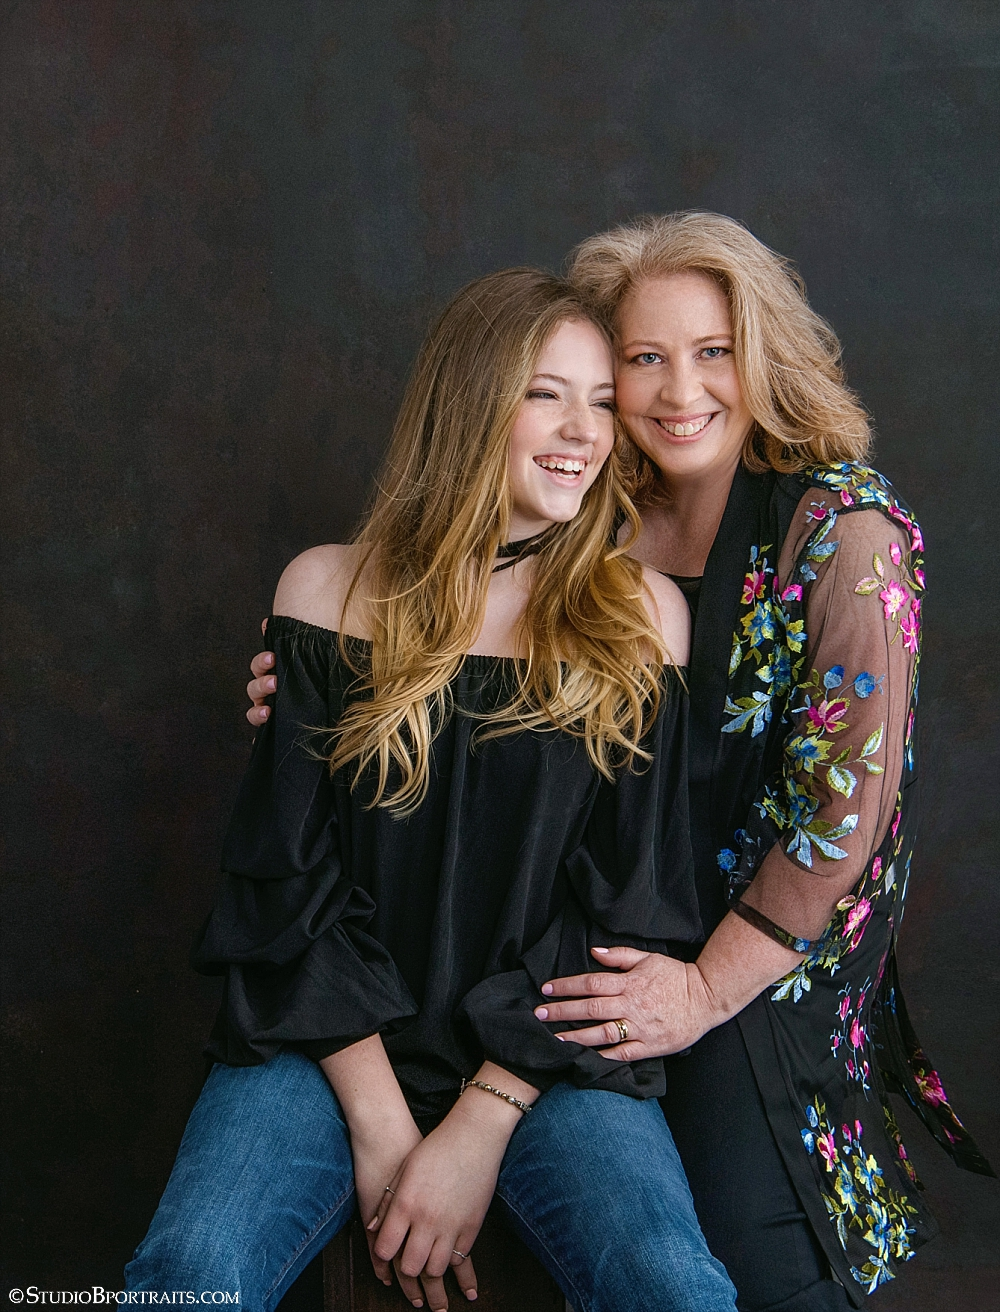 The Mother + Daughter Experience: 14 year-old Sydney and Mom Jennifer sharing a laugh and a snuggle in their first set of outfits